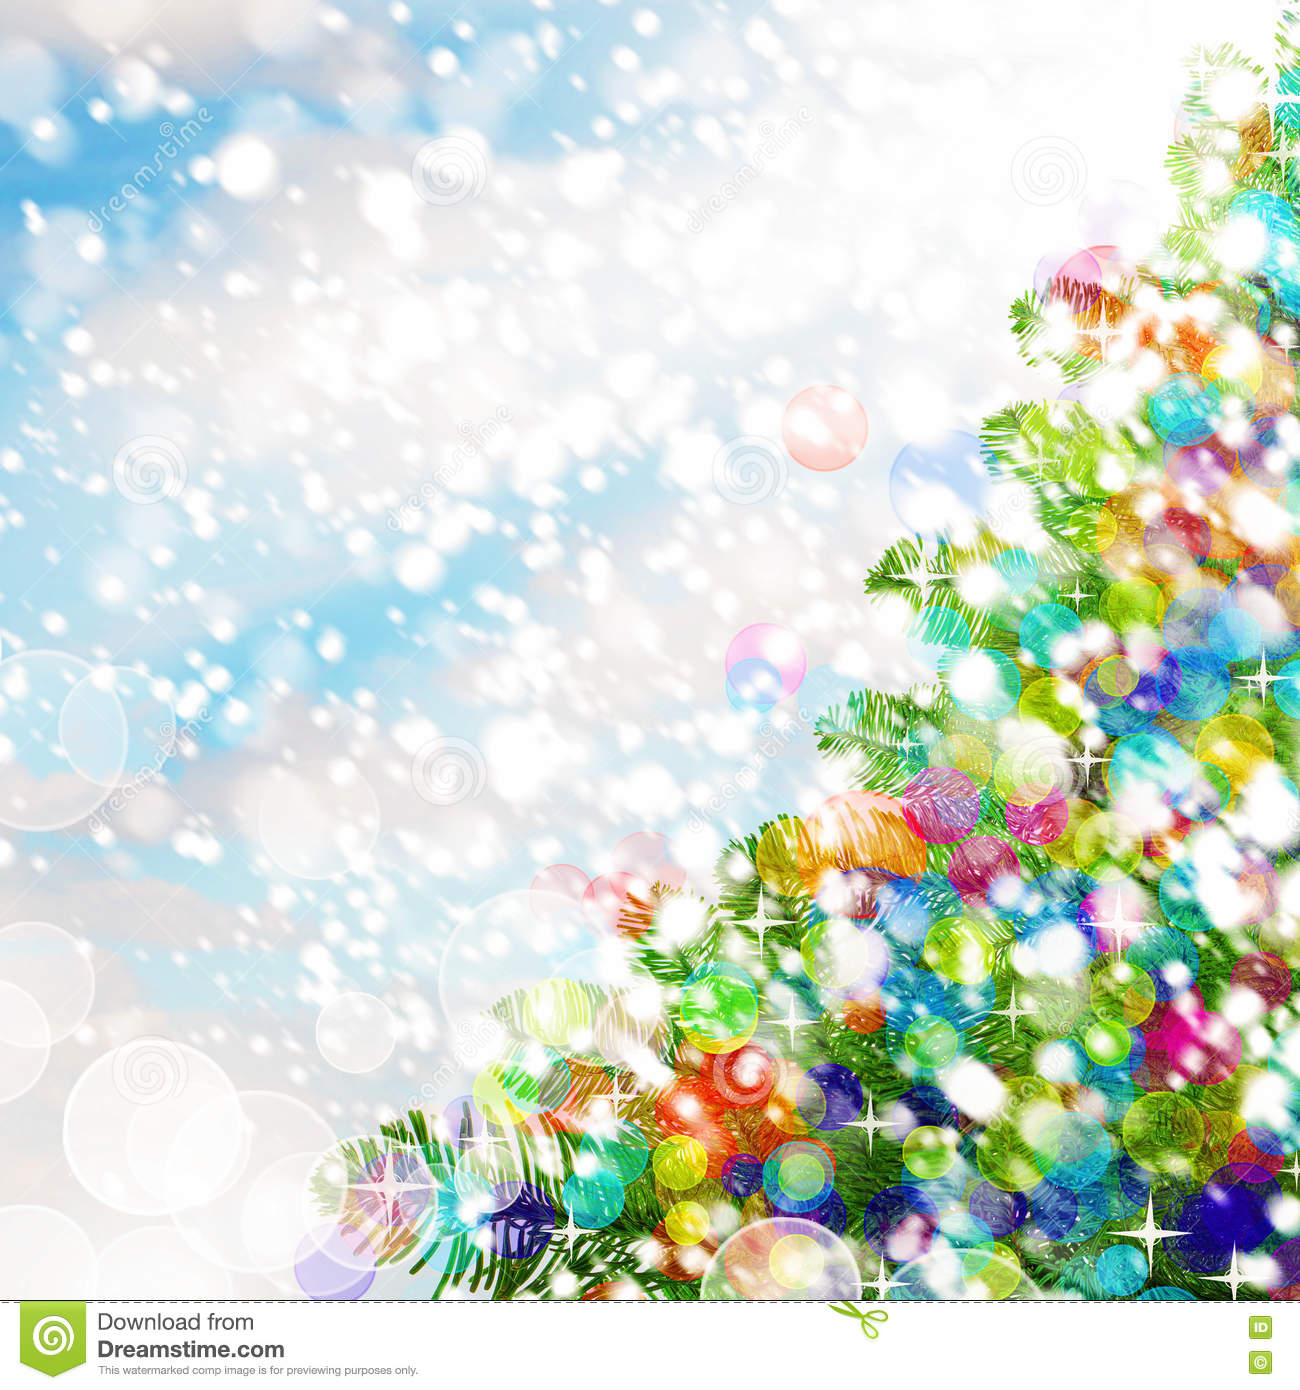 Colorful Christmas Background Design.Colorful Christmas Background Christmas Tree Snow And